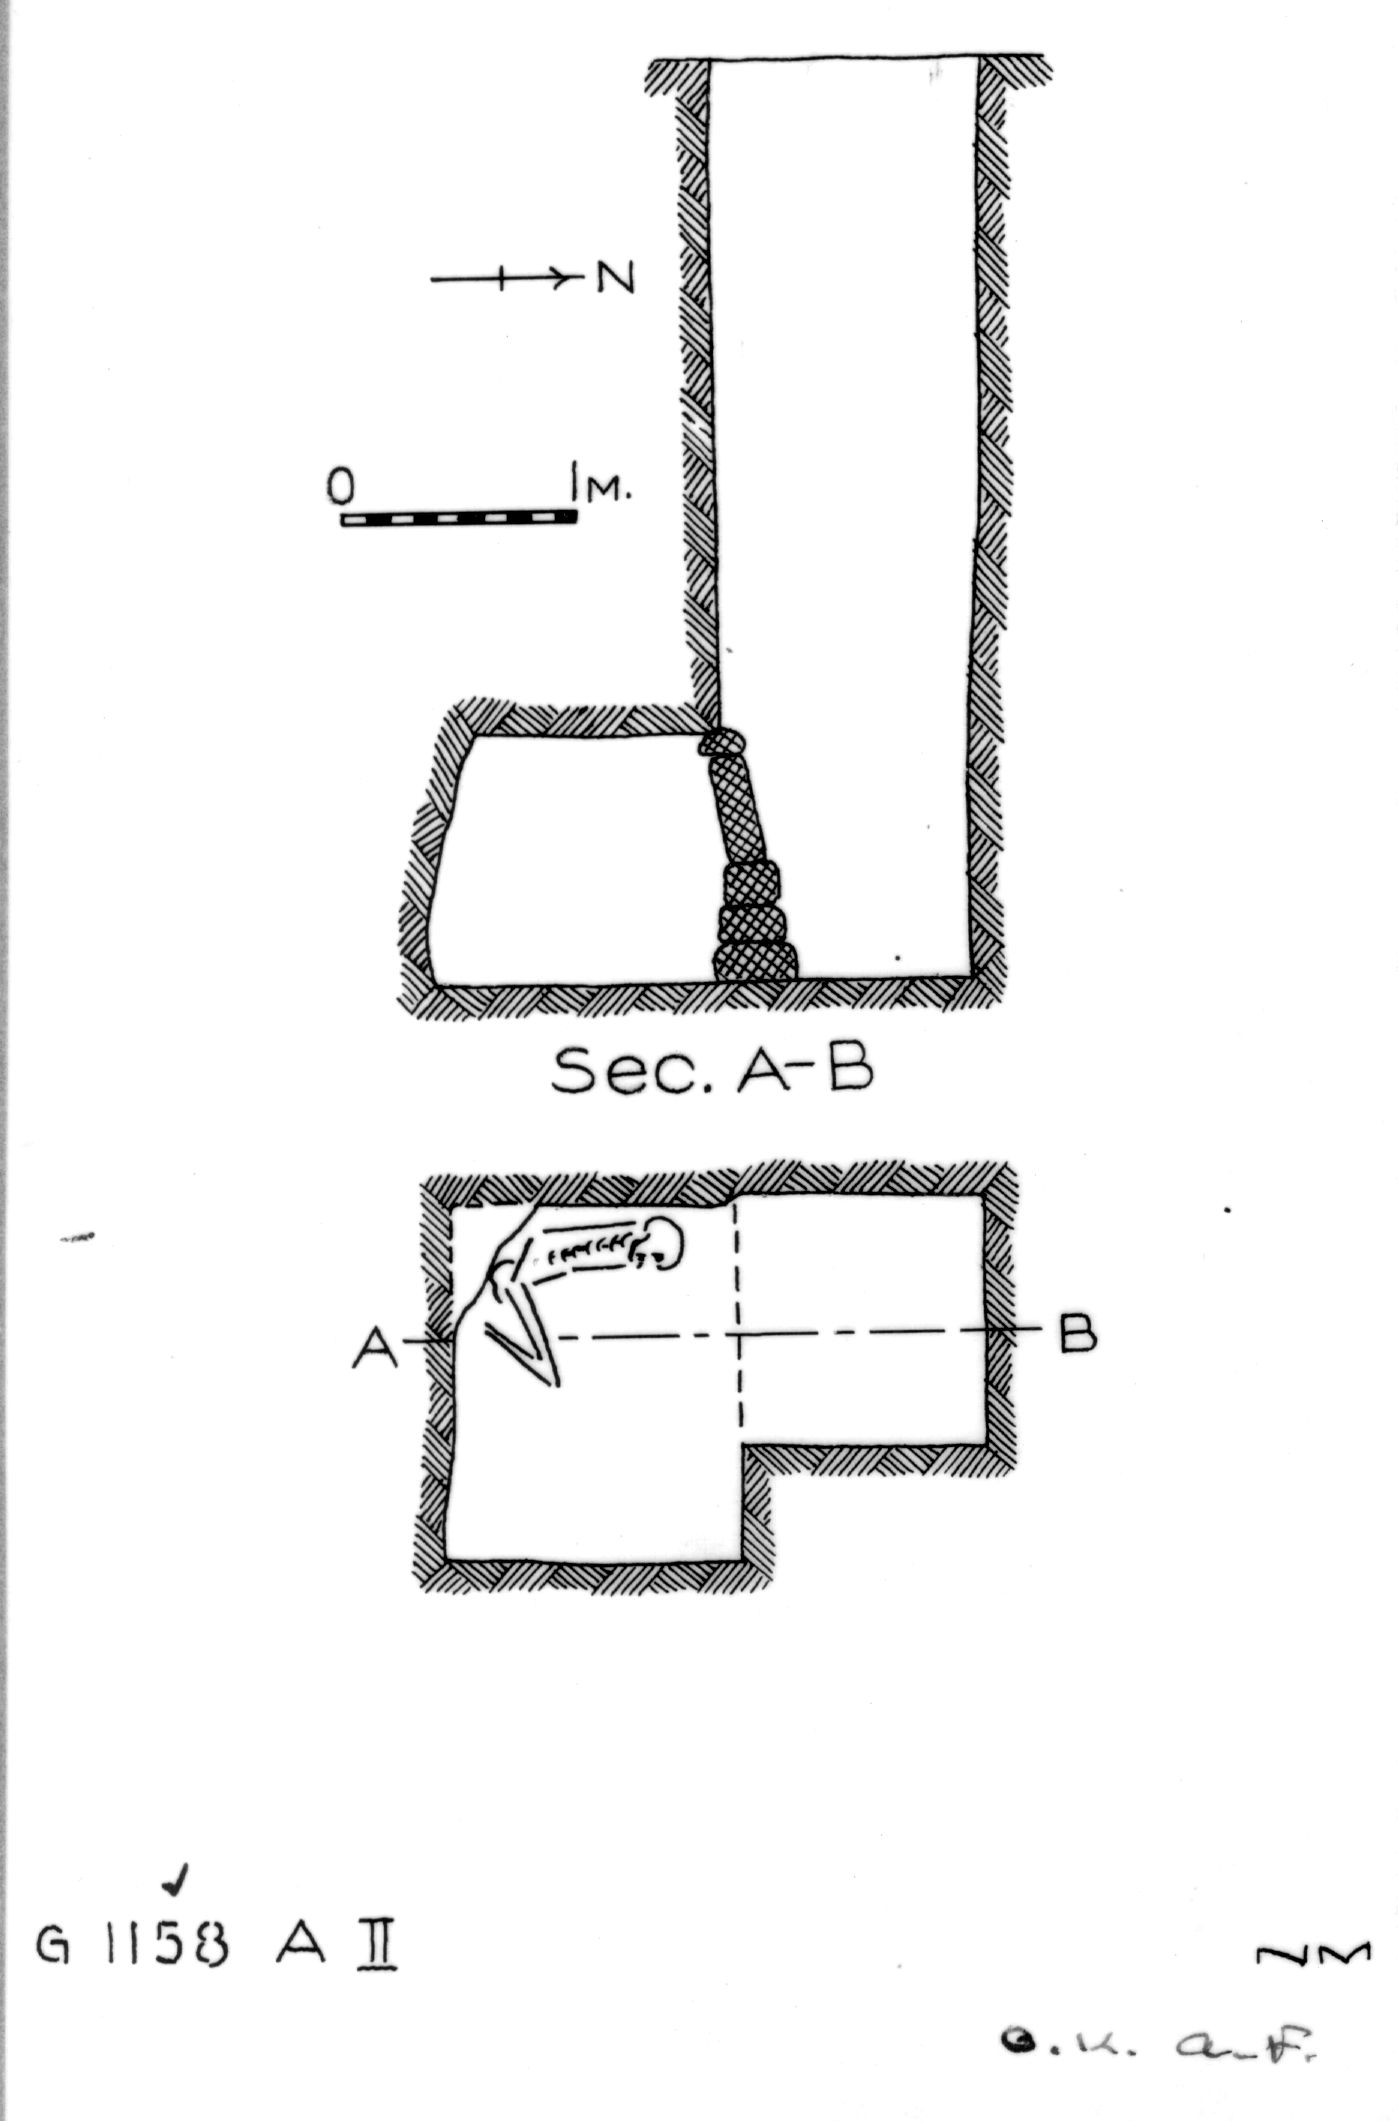 Maps and plans: G 1158, Shaft A (II)